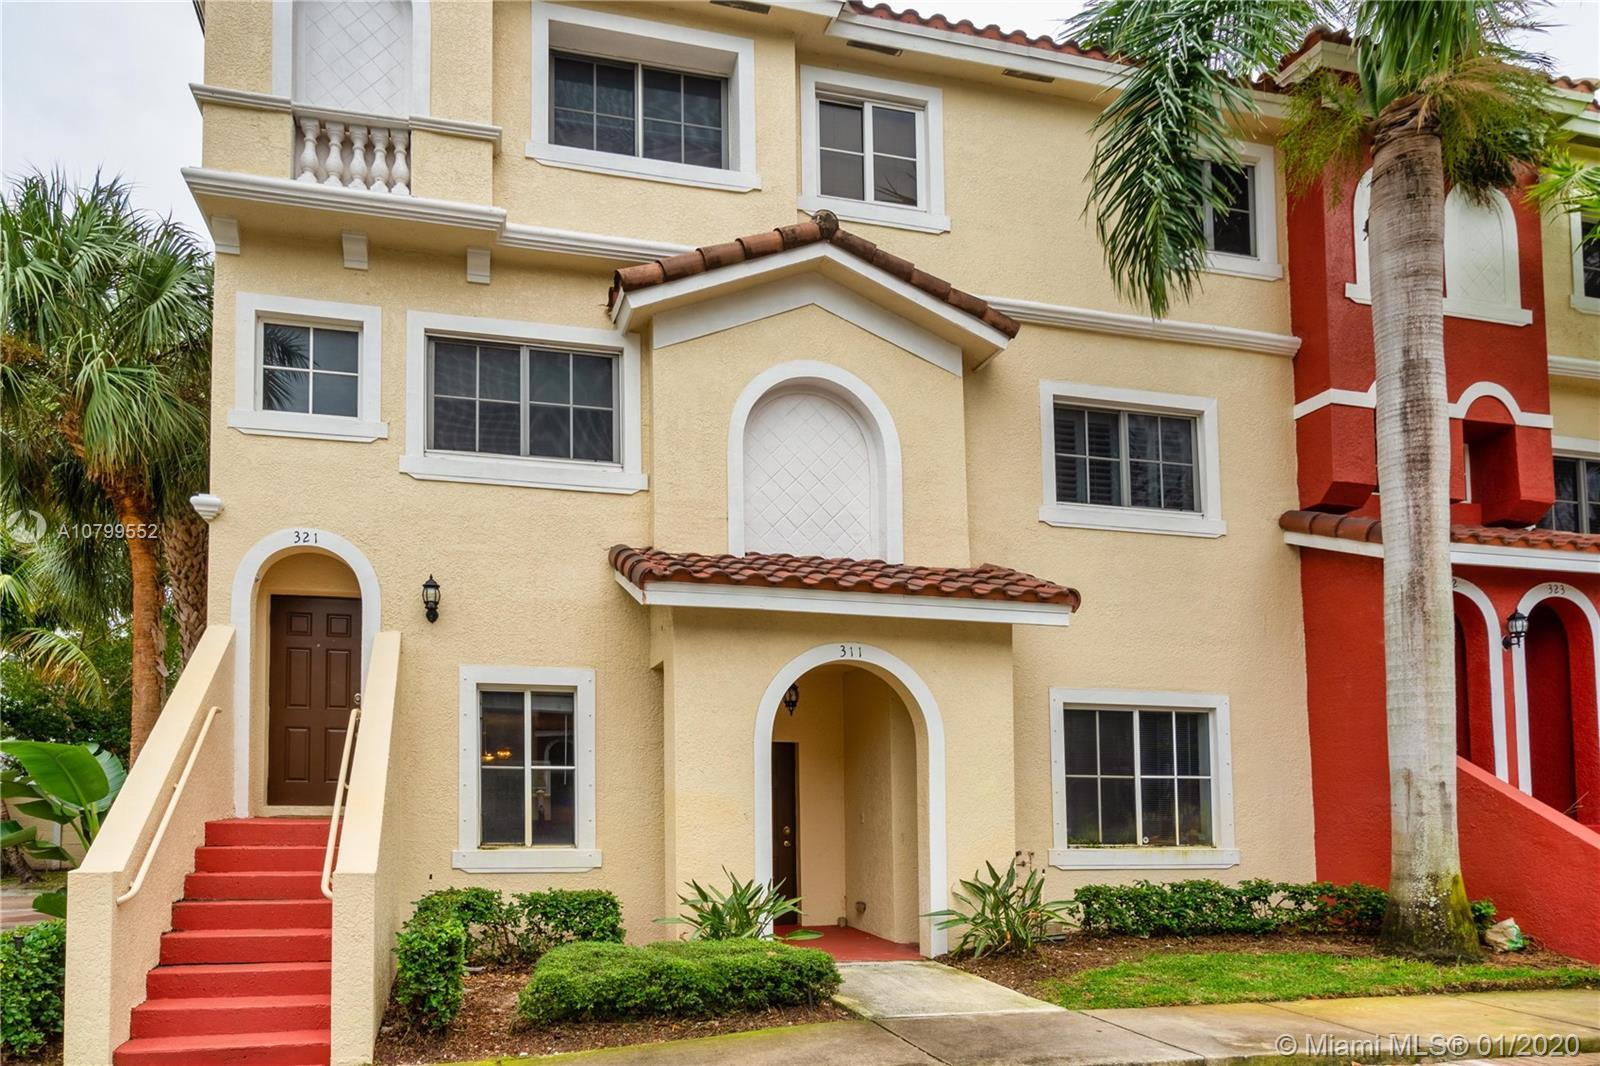 Centrally located, income producing condo in East Boynton Beach just minutes from everything South F